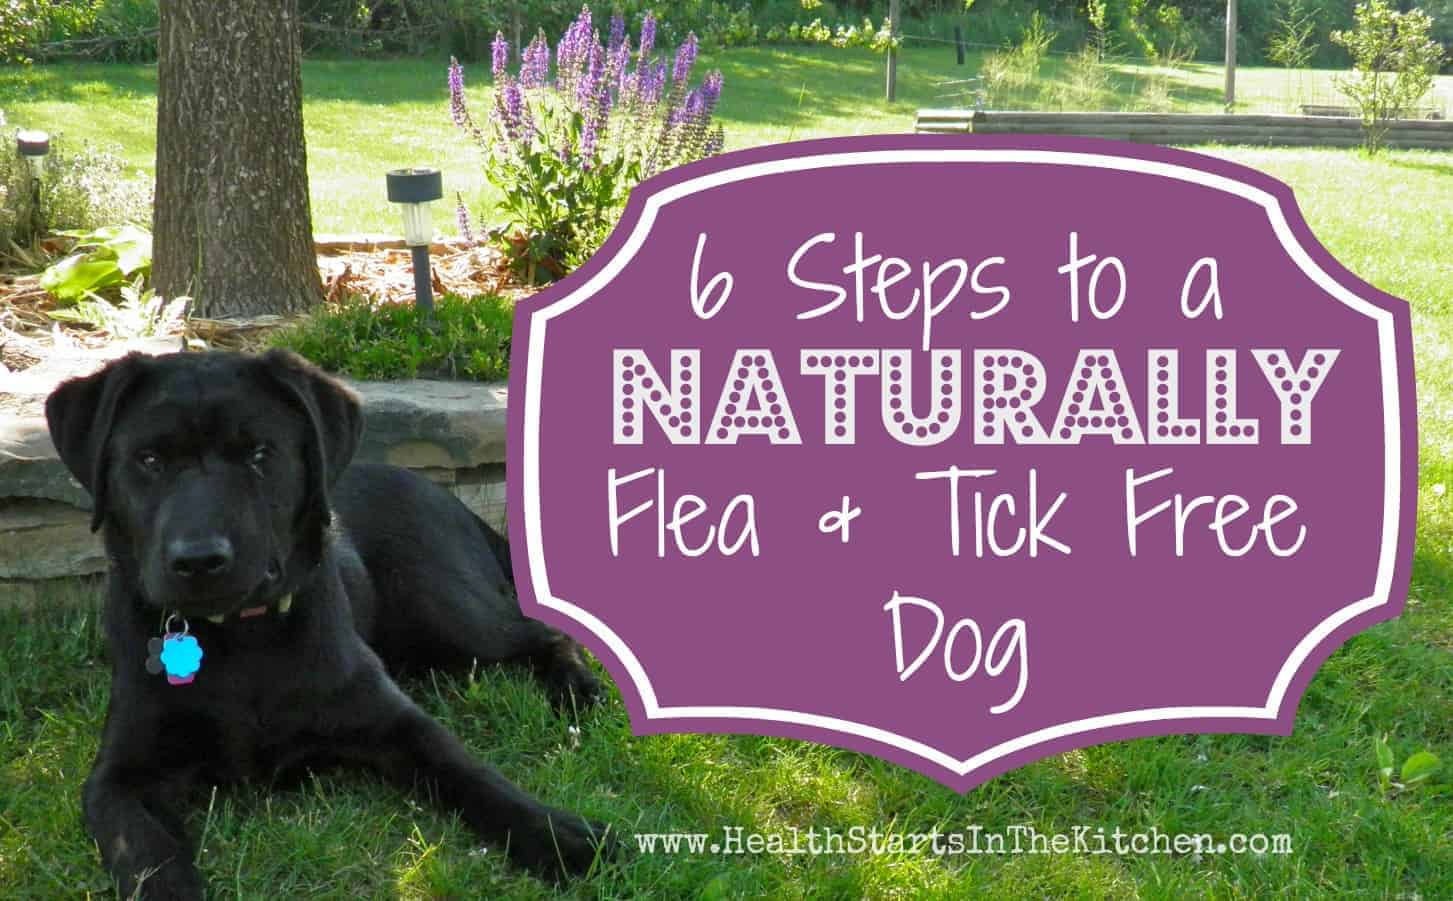 6 Steps to a Naturally Flea & Tick Free Dog